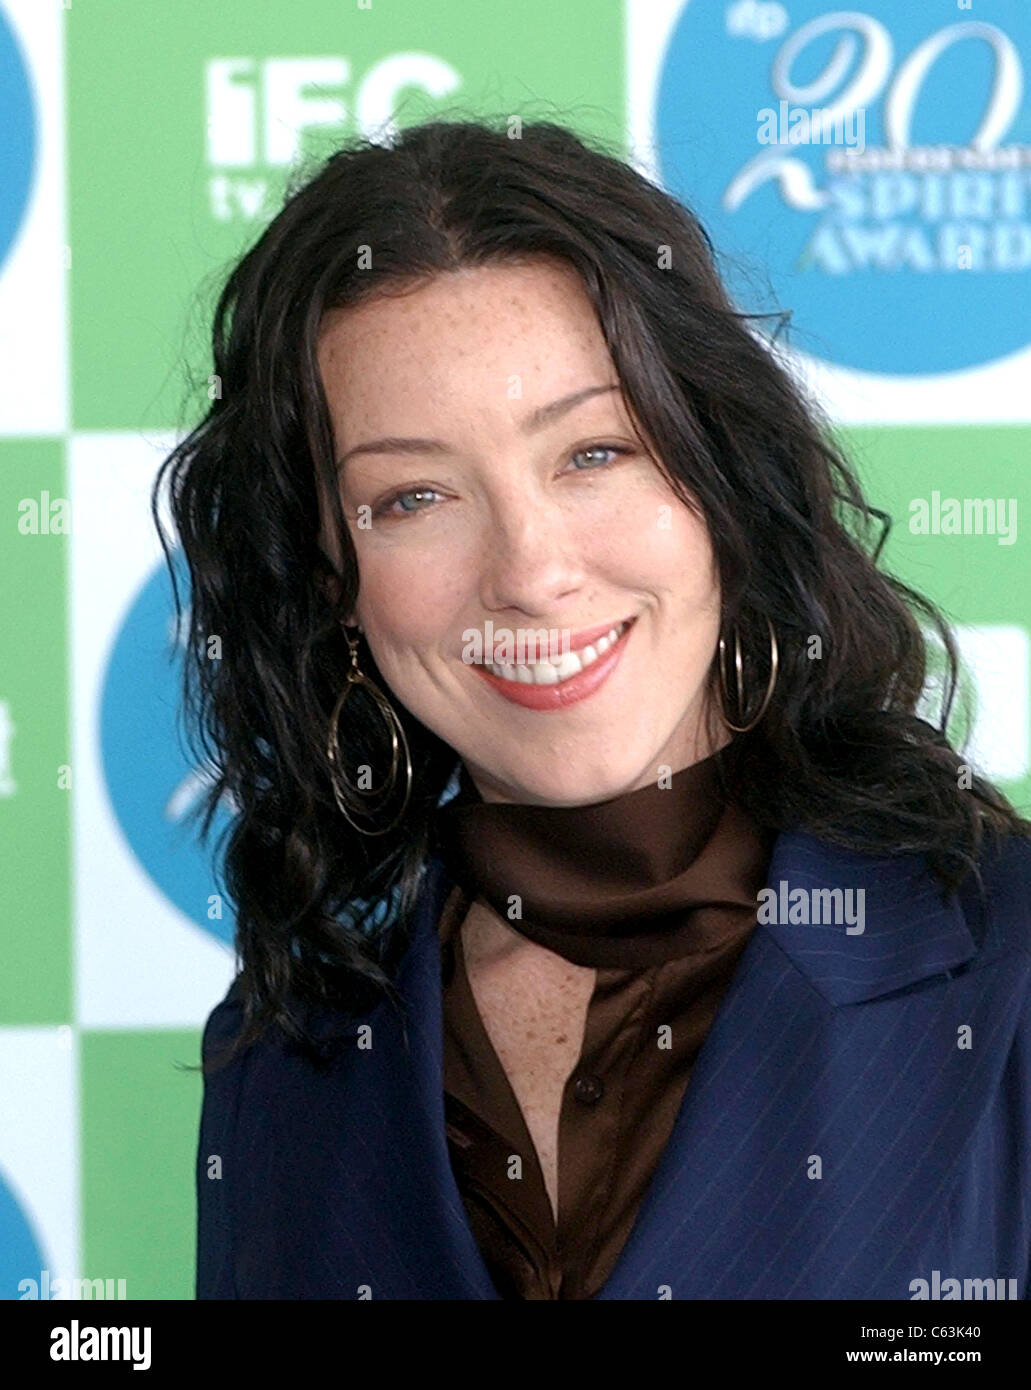 Molly Parker at arrivals for 20th IFP Independent Spirit Awards, Los Angeles, CA, Saturday, February 26, 2005. Photo - Stock Image